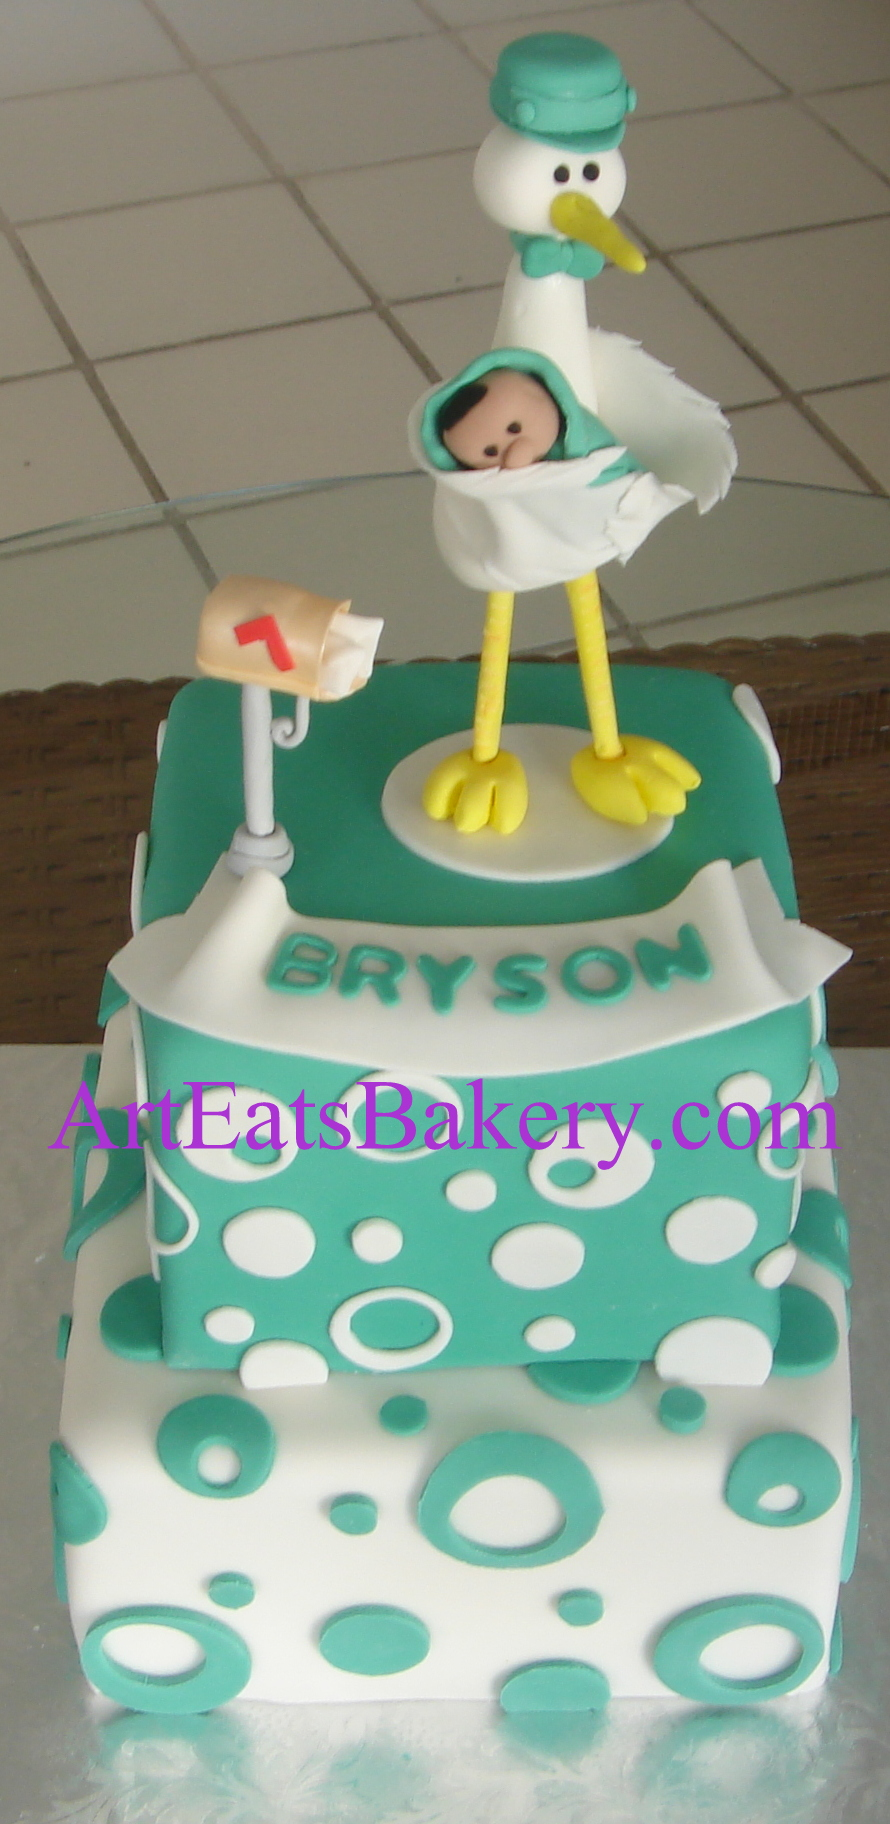 Teal blue dots and circles square two tier fondant modern babyshower cake design with edible stork, baby and mail box topper.jpg